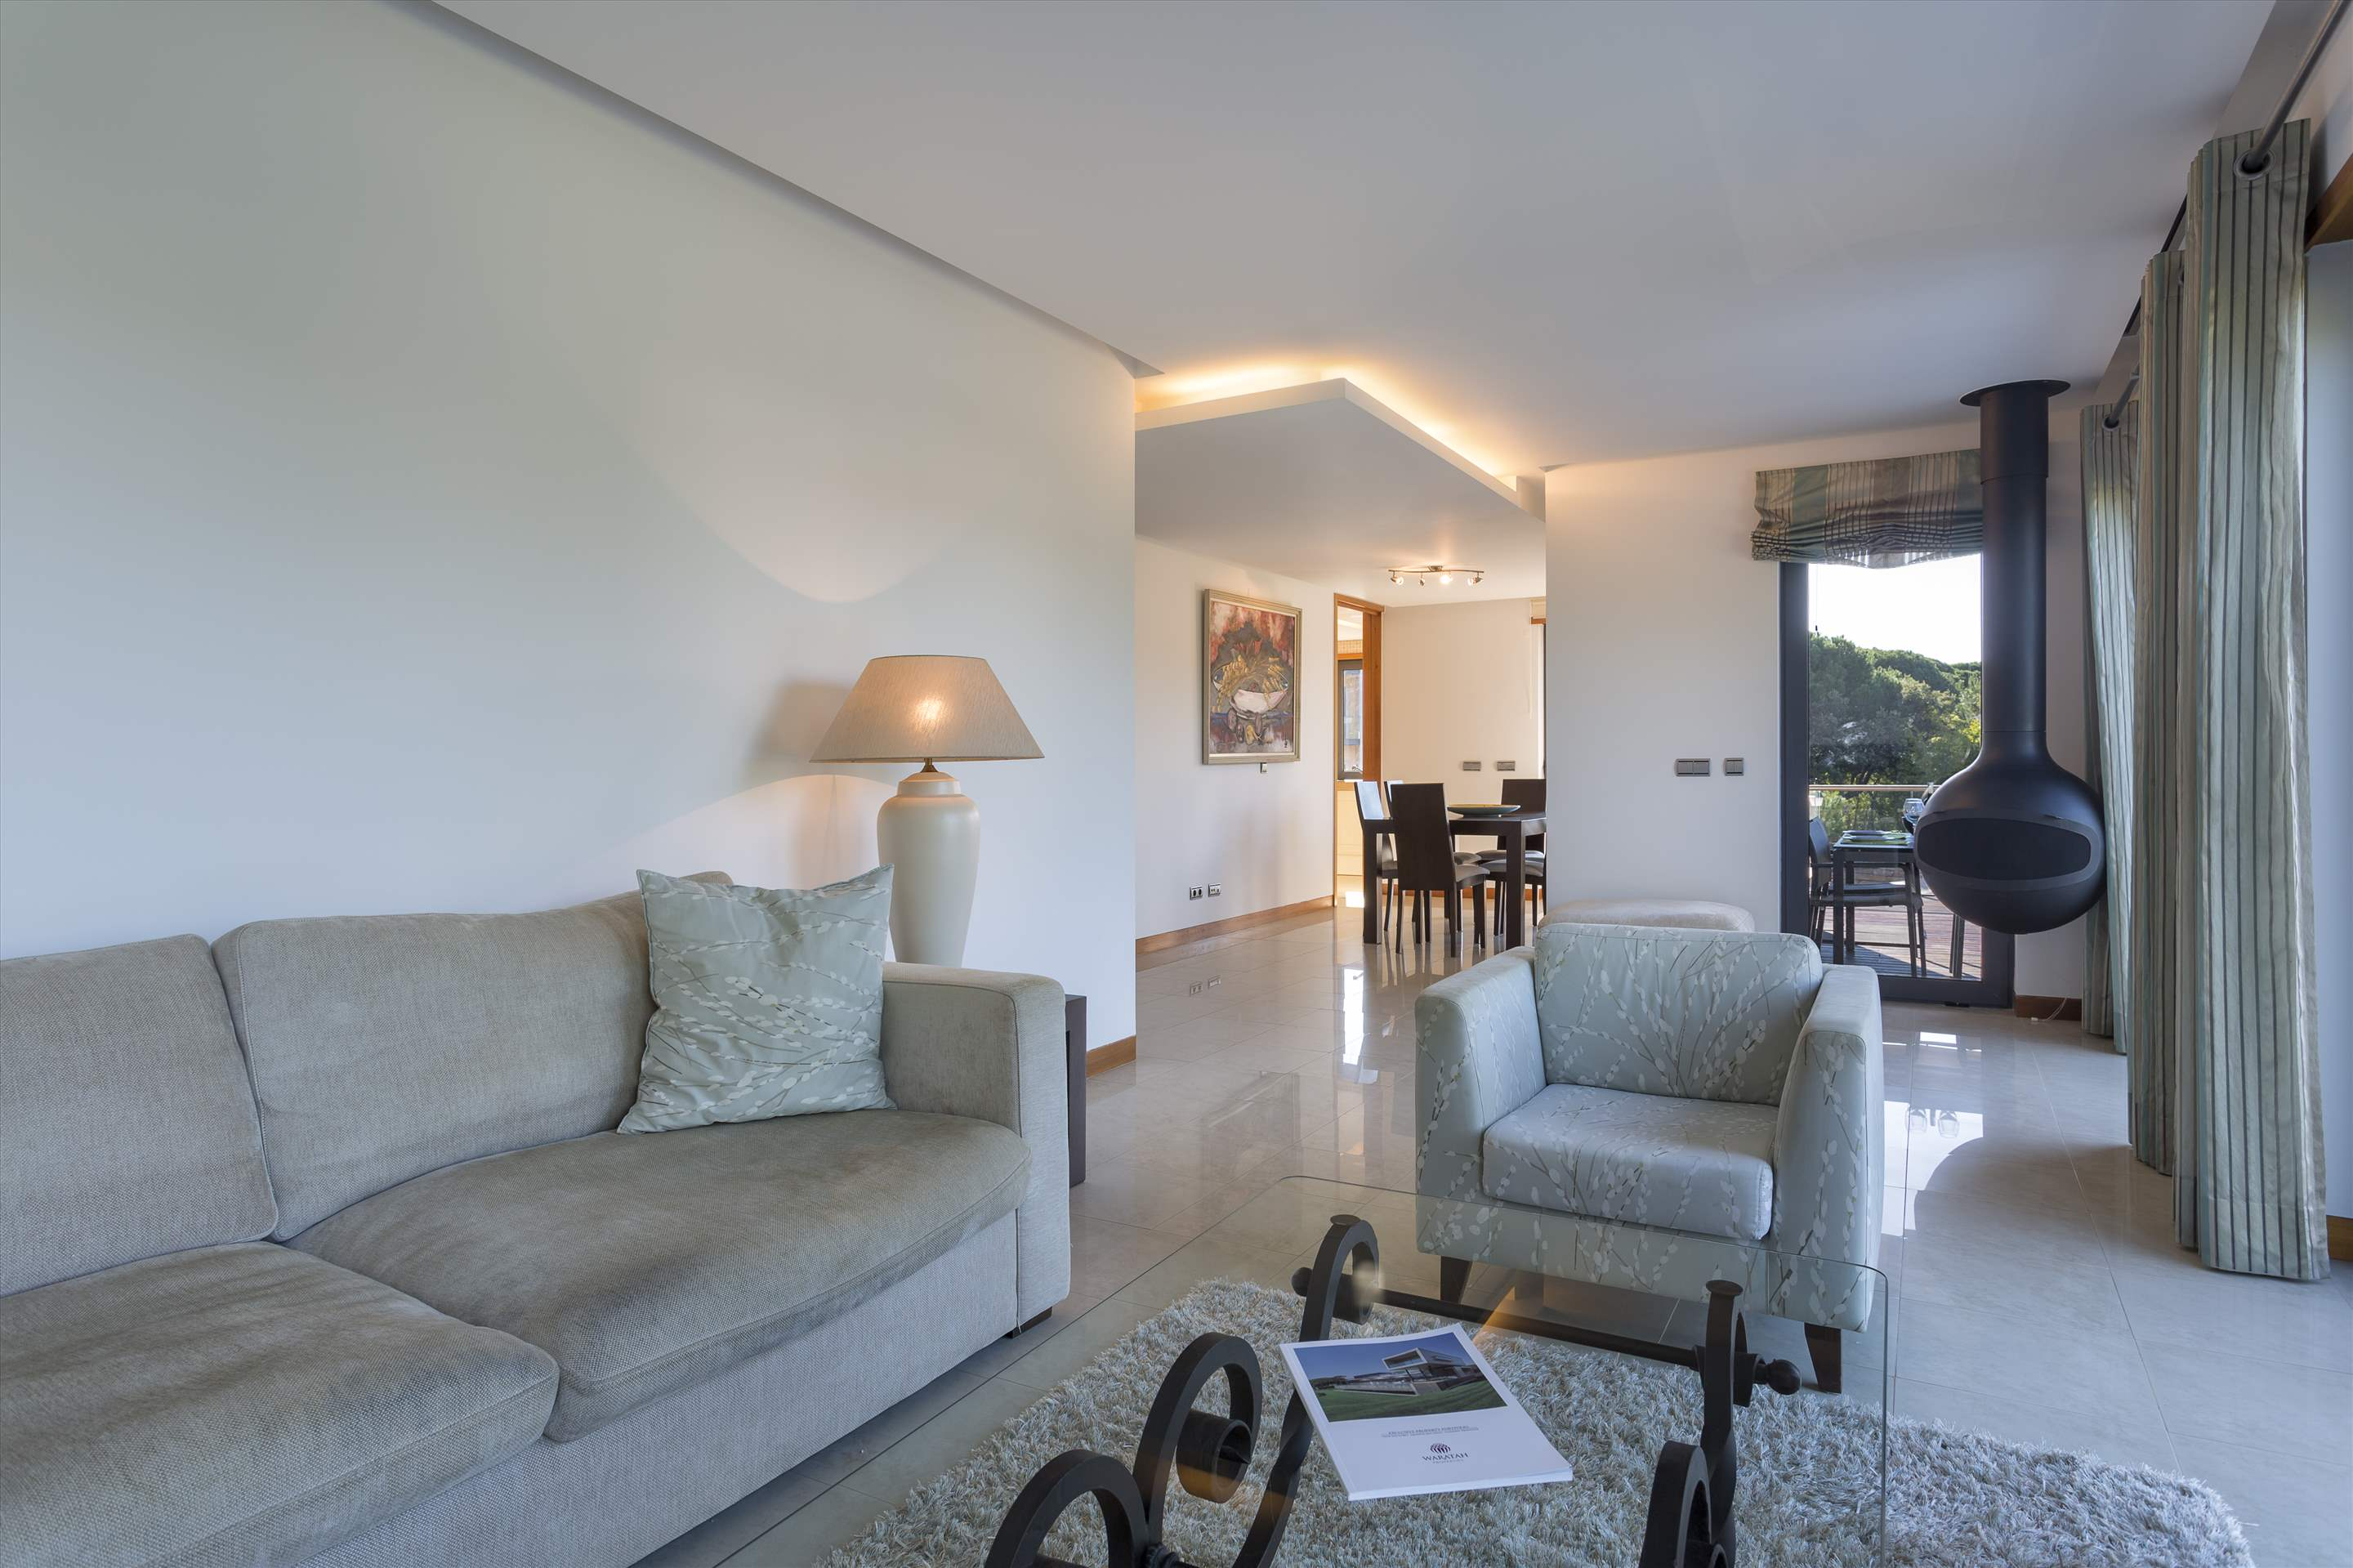 Apartment Alexandra, 2 bedroom apartment in Vale do Lobo, Algarve Photo #6